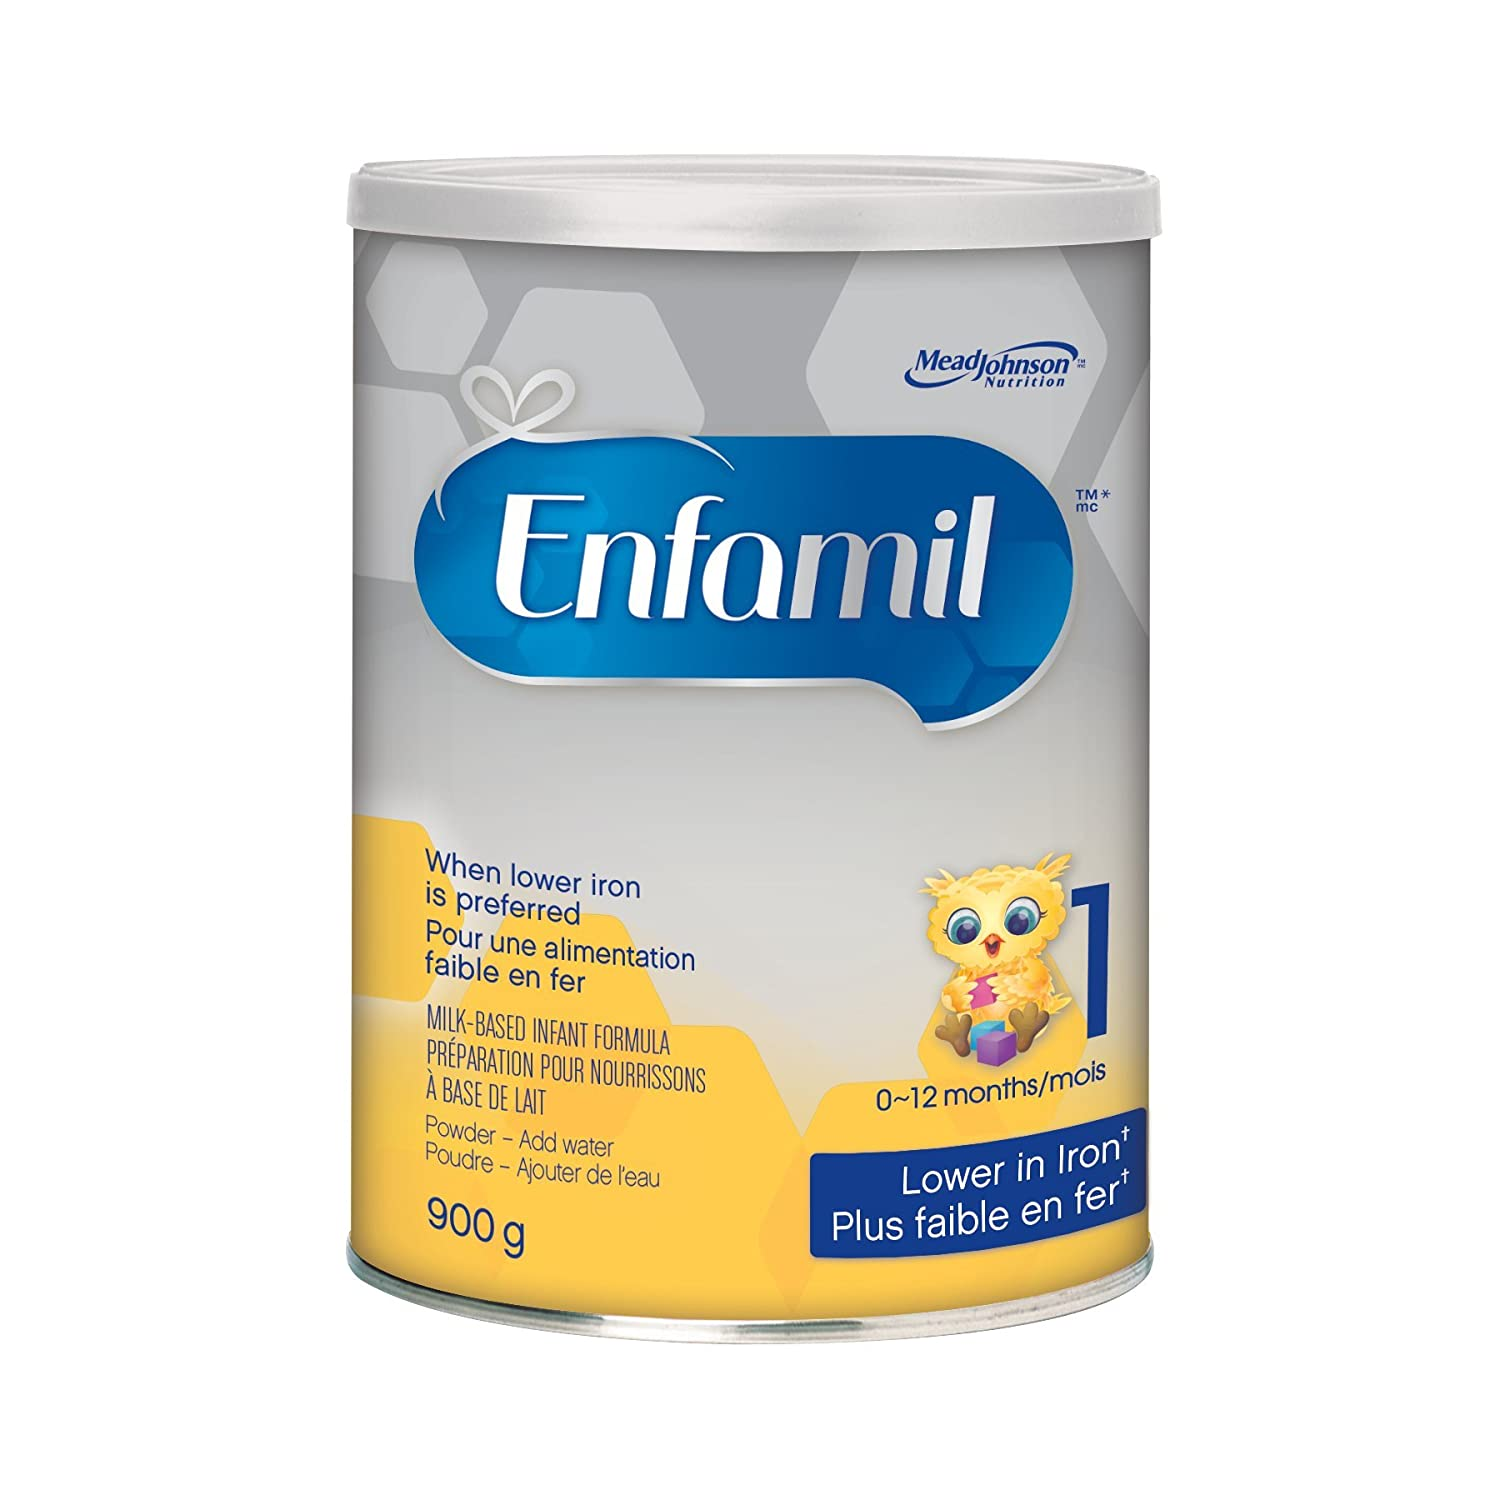 Enfamil Lower Iron Infant Formula, Powder, 900g